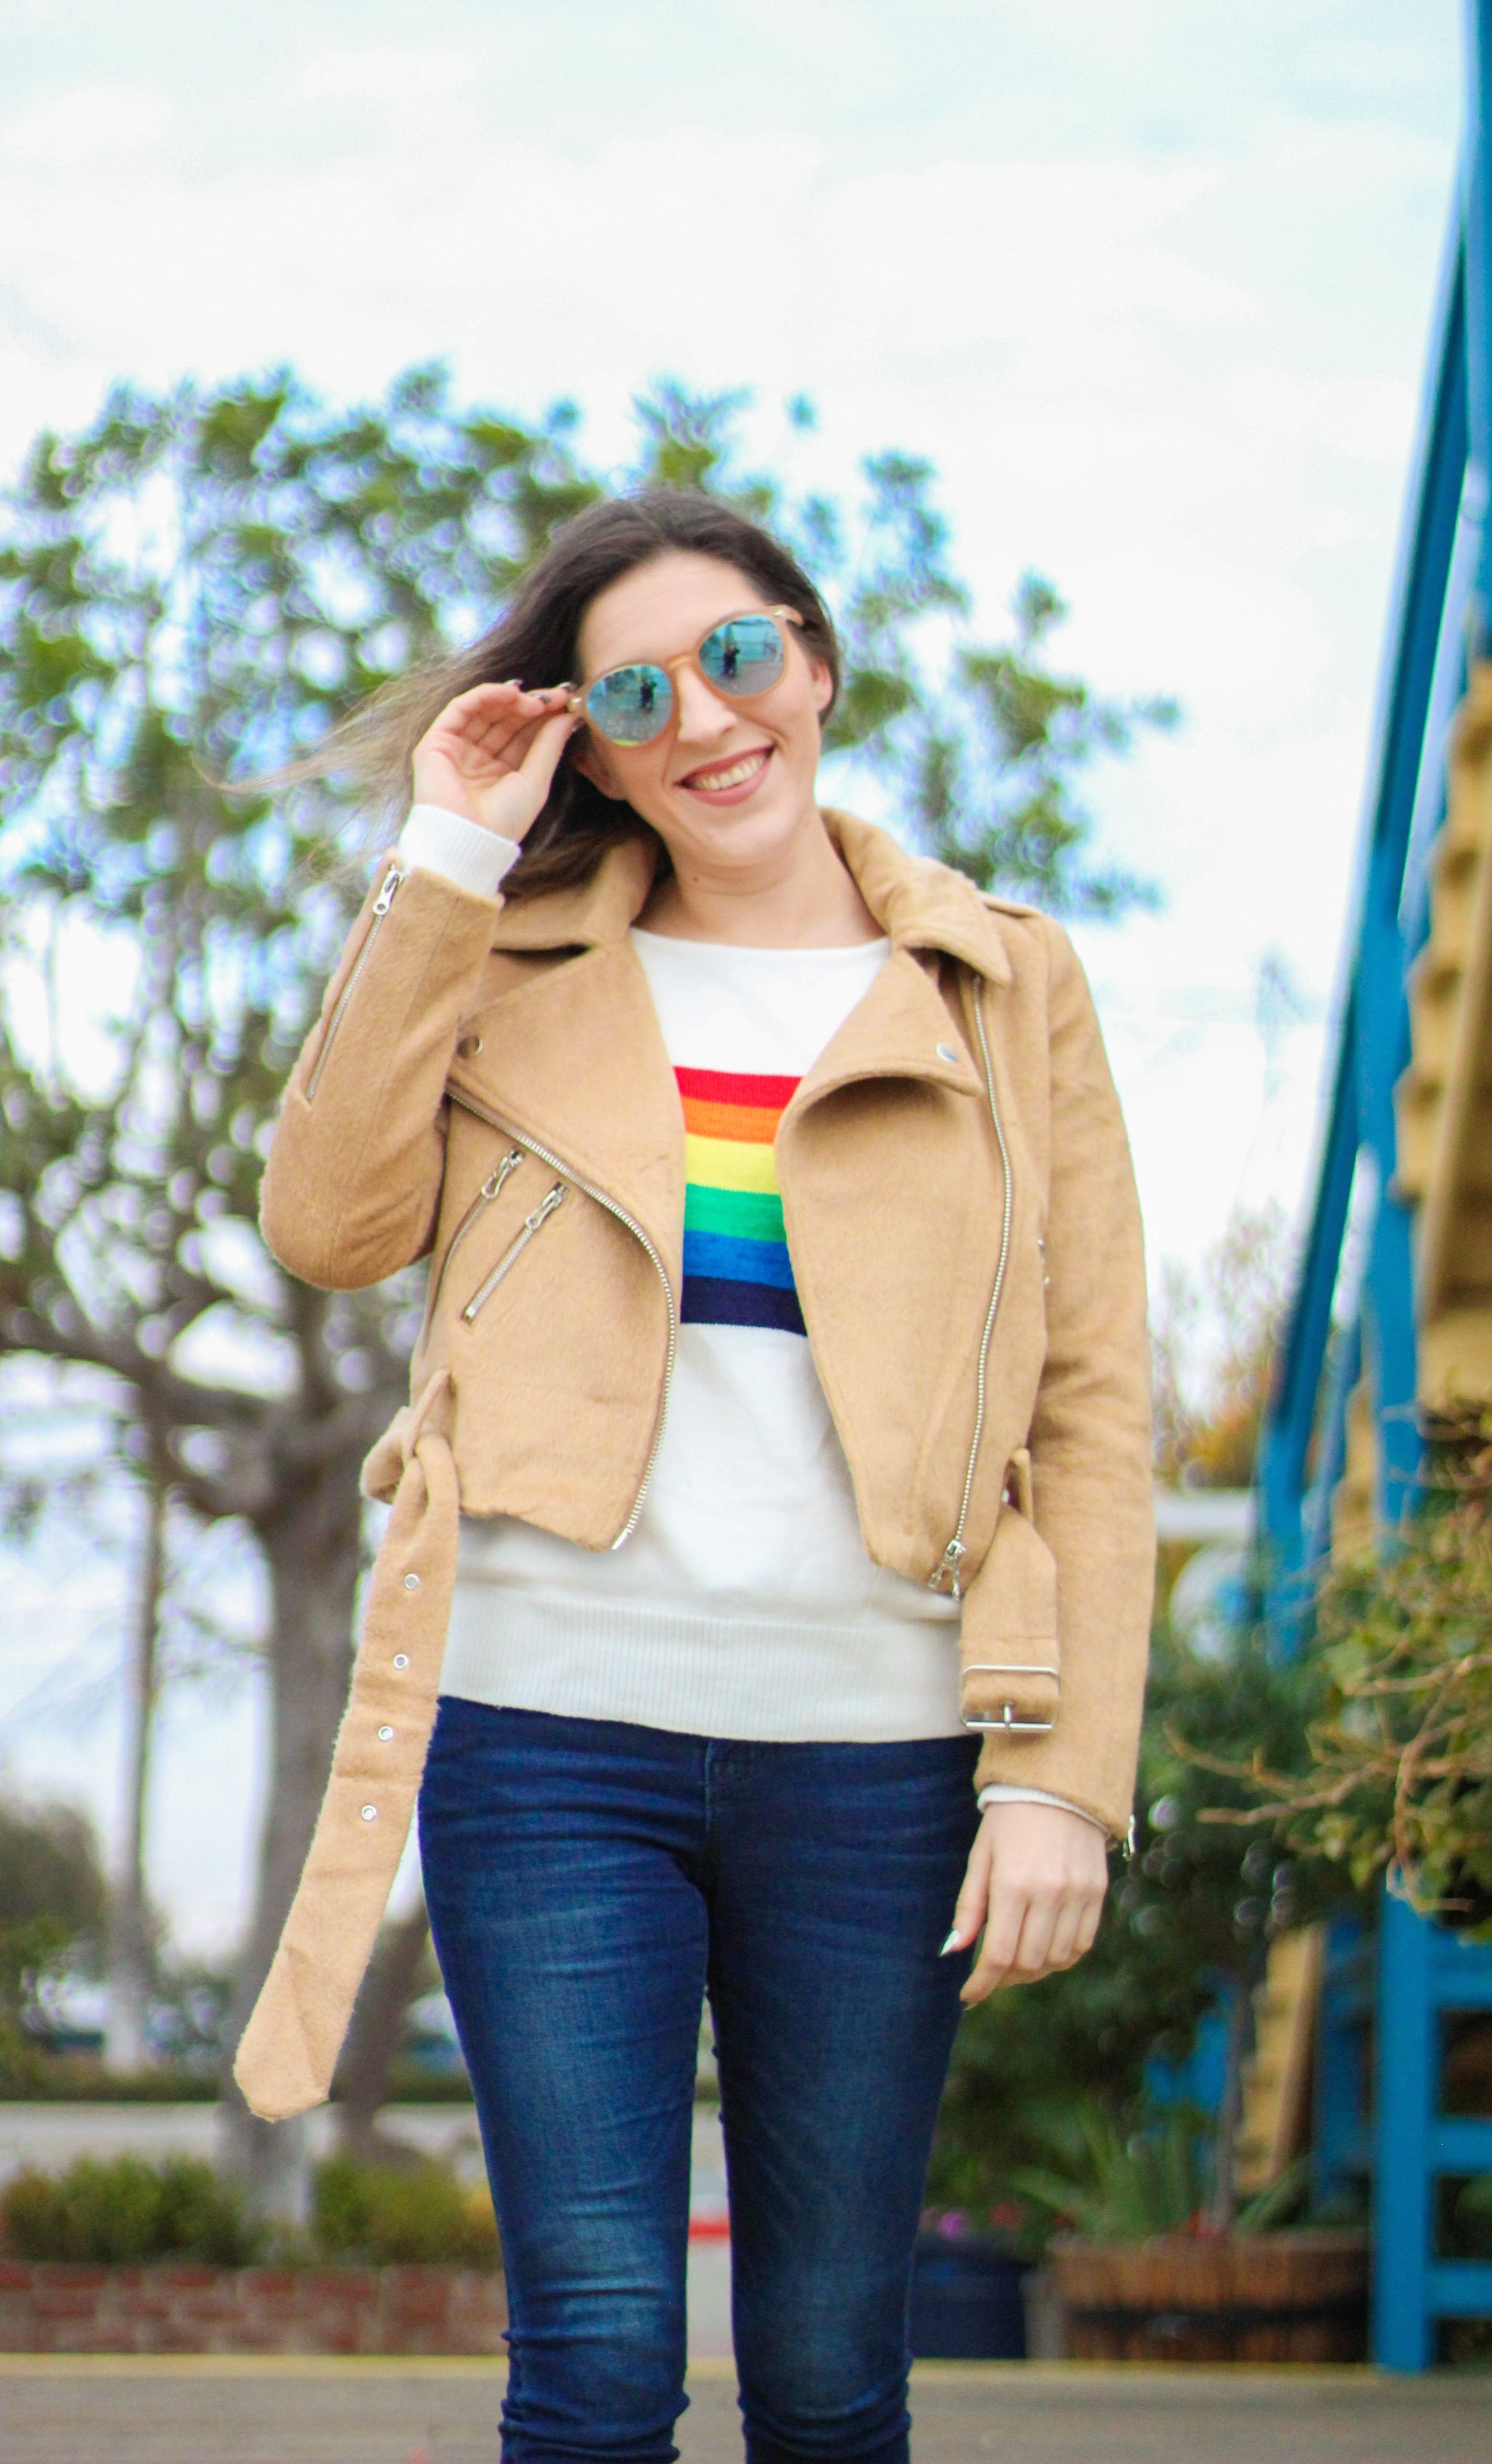 Jacket:   F21   // Sweater:   Shein   // Jeans:   Old Navy   // Shoes: Zara, similar   here   // Sunnies:   Le Specs